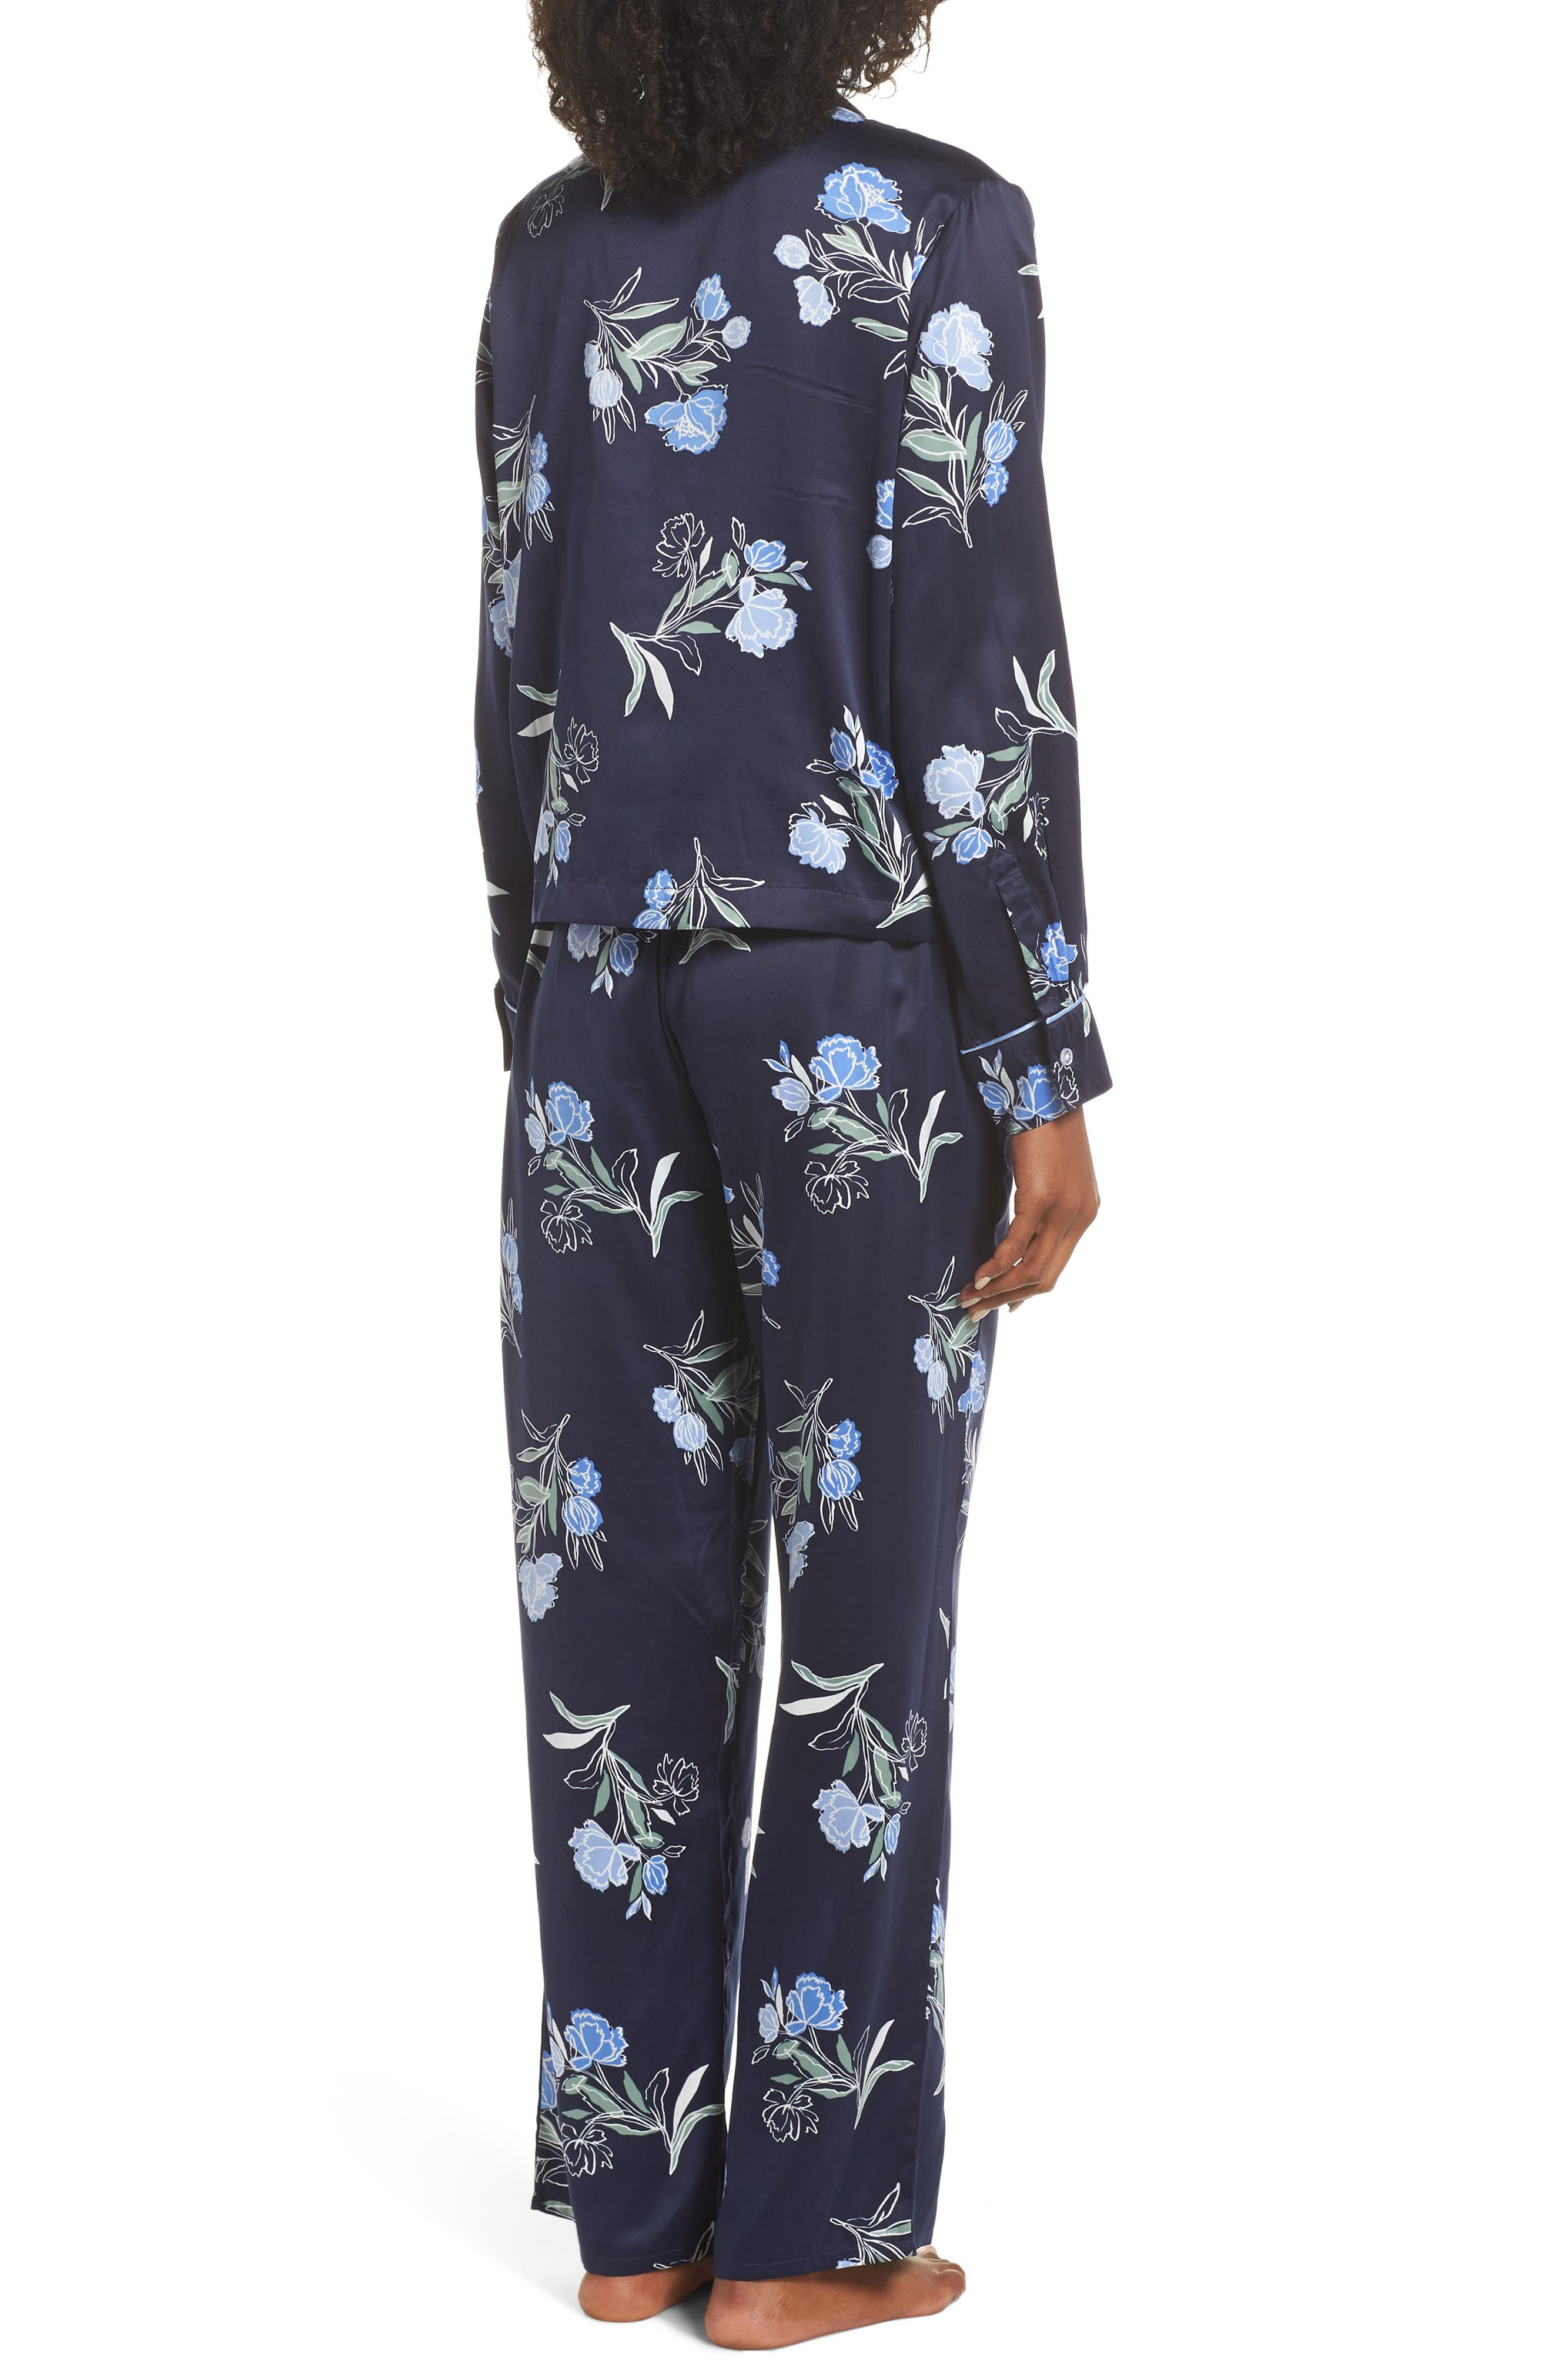 eb8ed97d5899 Women s Splendid Pajamas   Robes